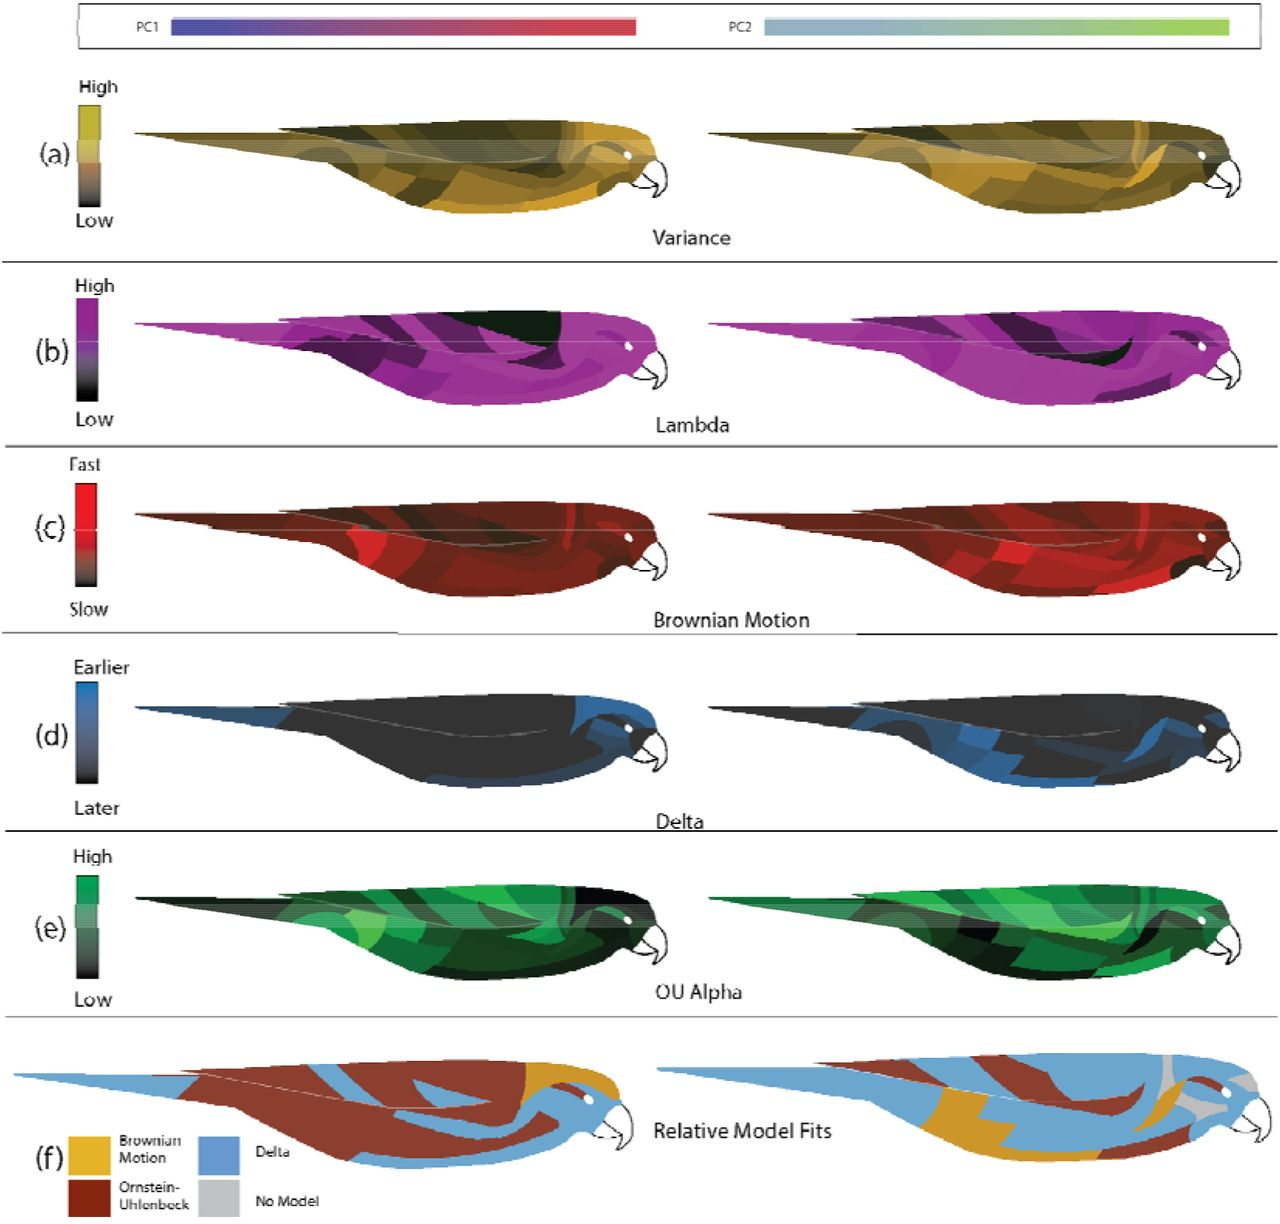 Bursts and constraints generate a rainbow in the lorikeets | bioRxiv